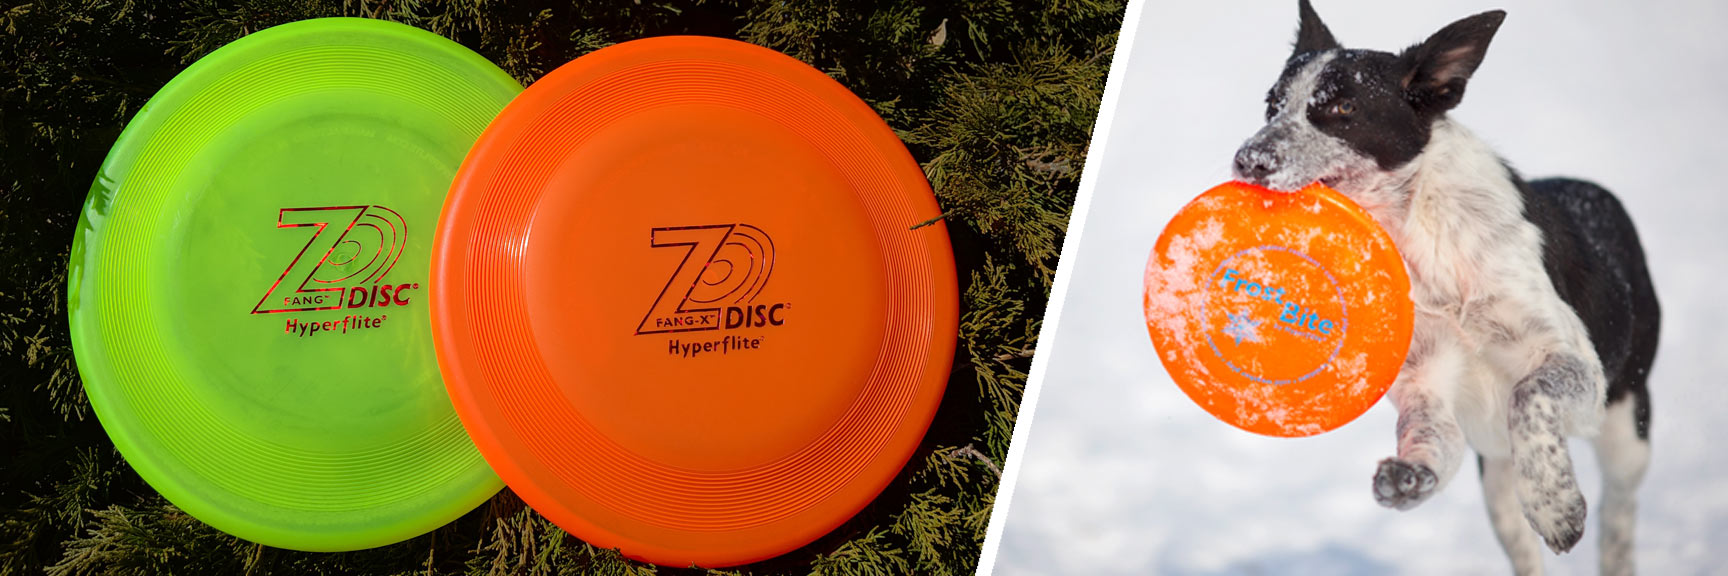 ULTIMATE FRISBEE PRODUCTS